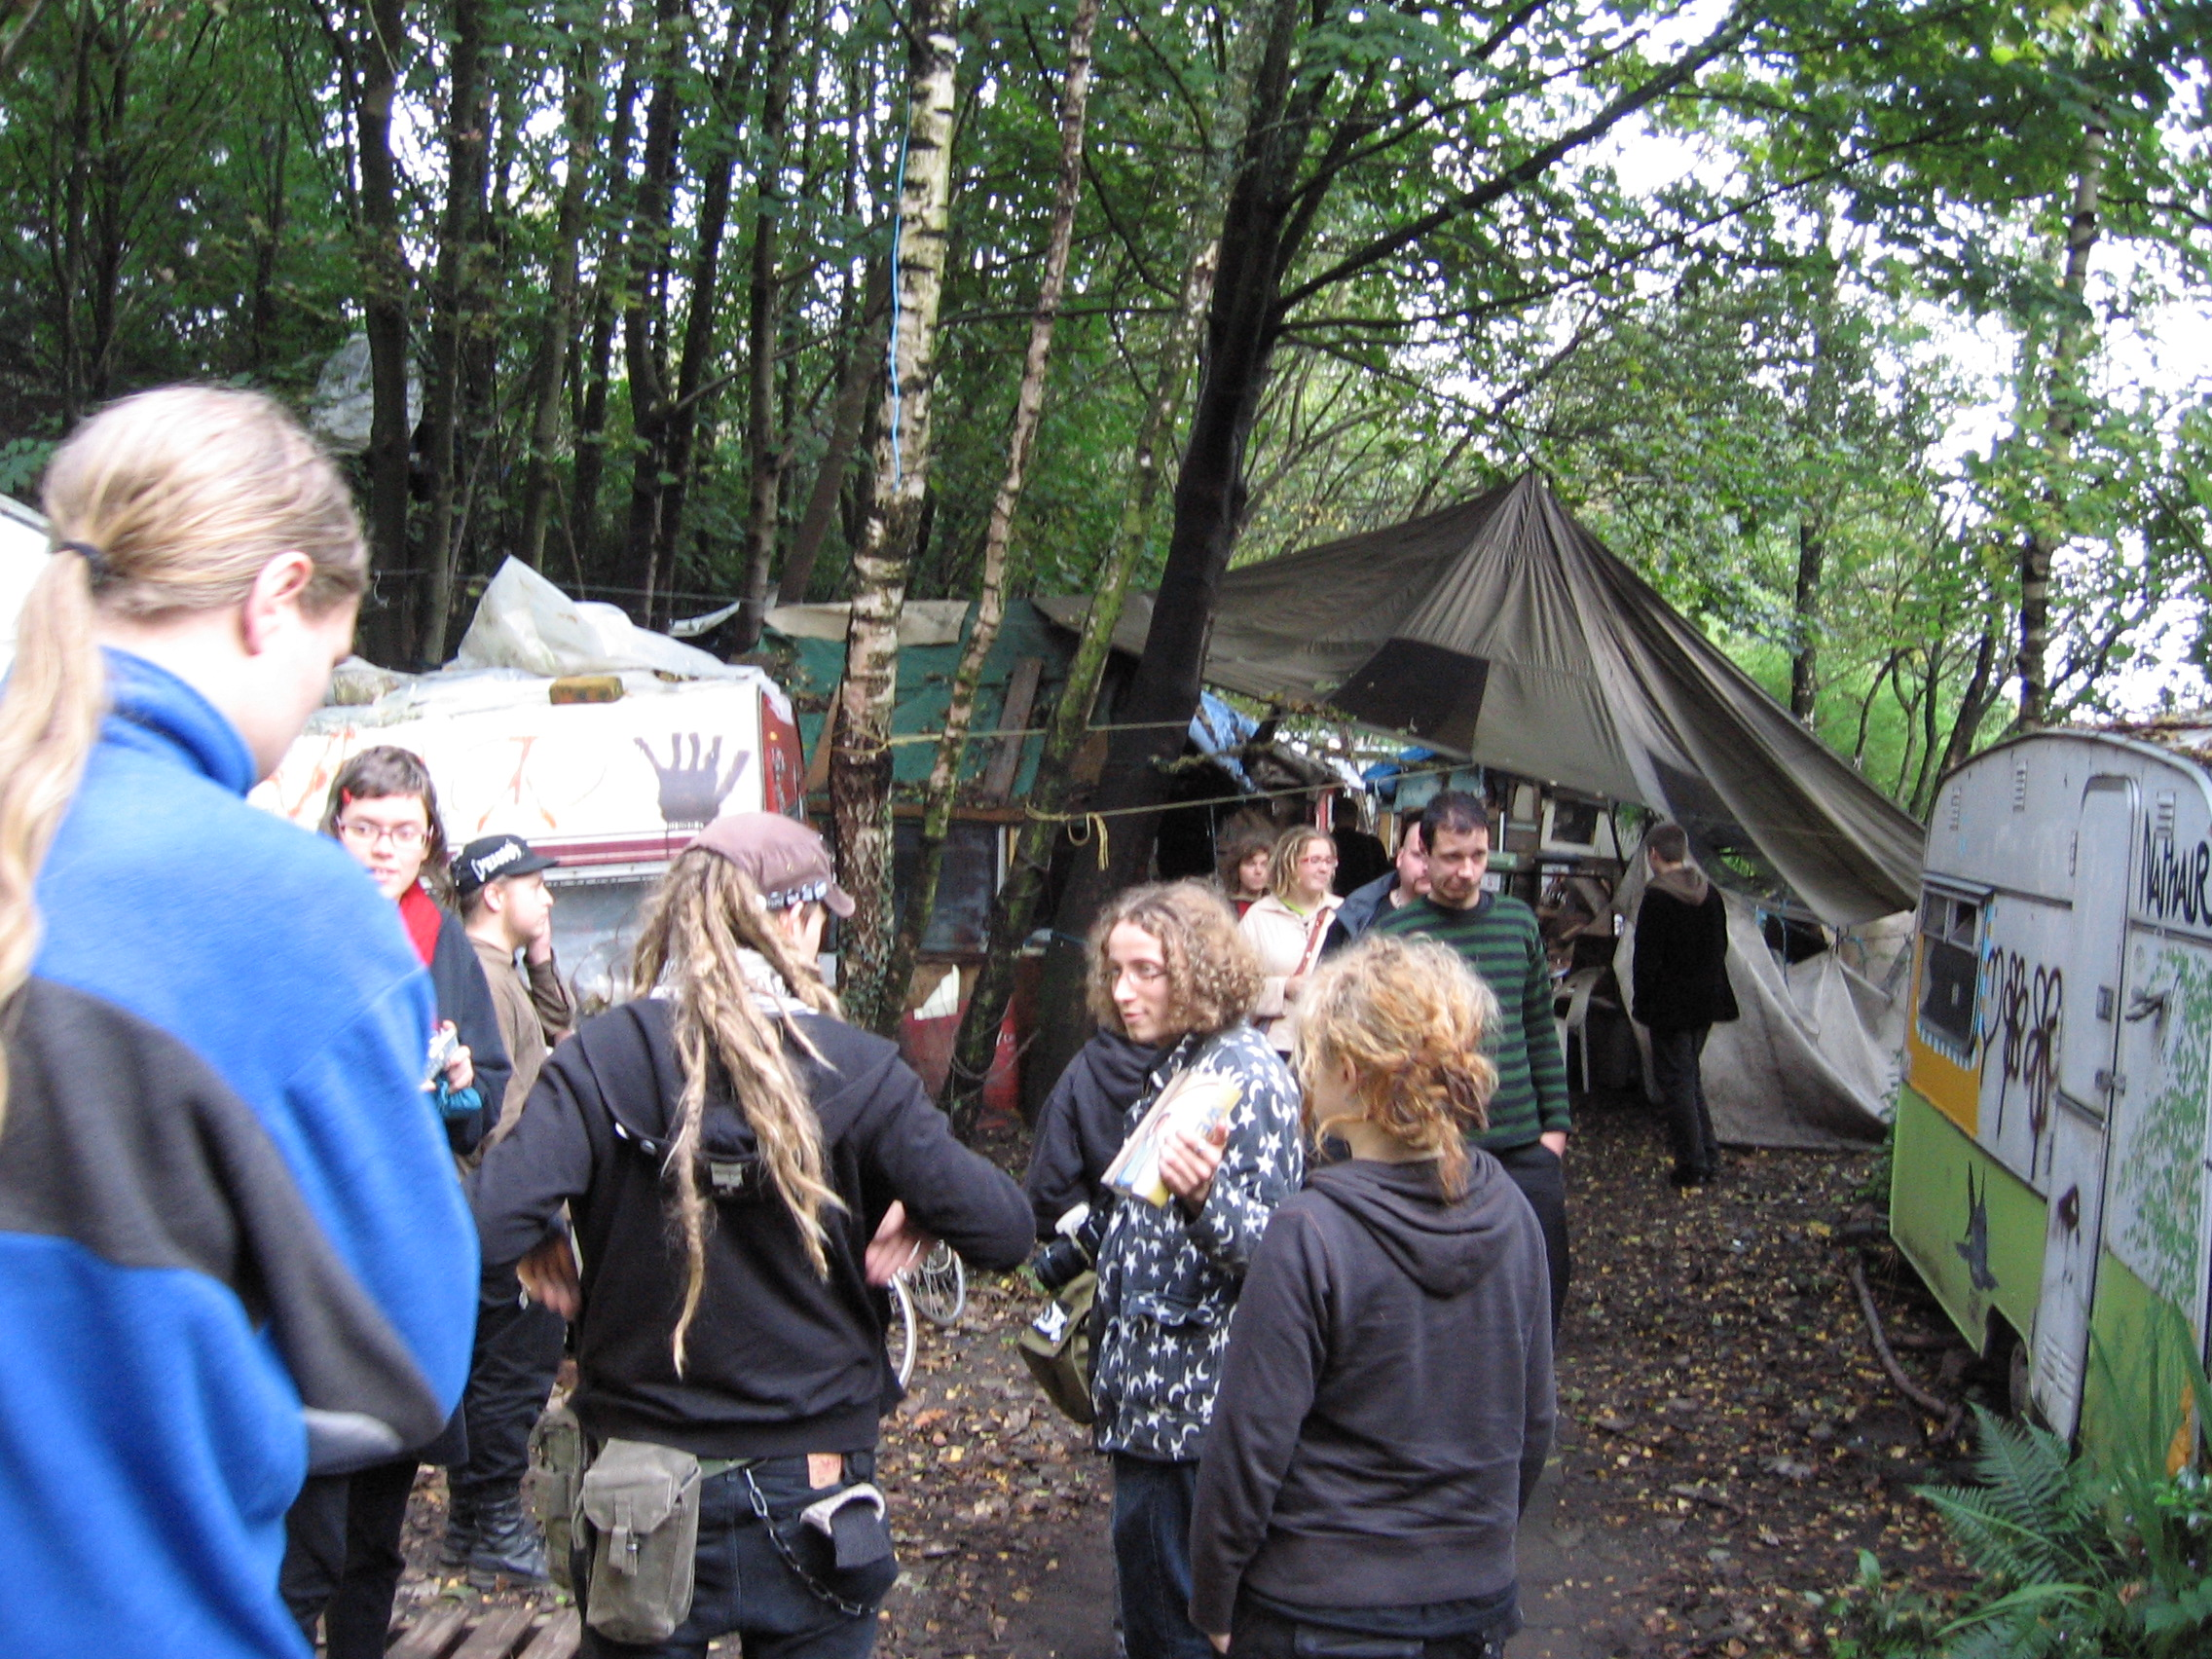 Faslane Peace Camp